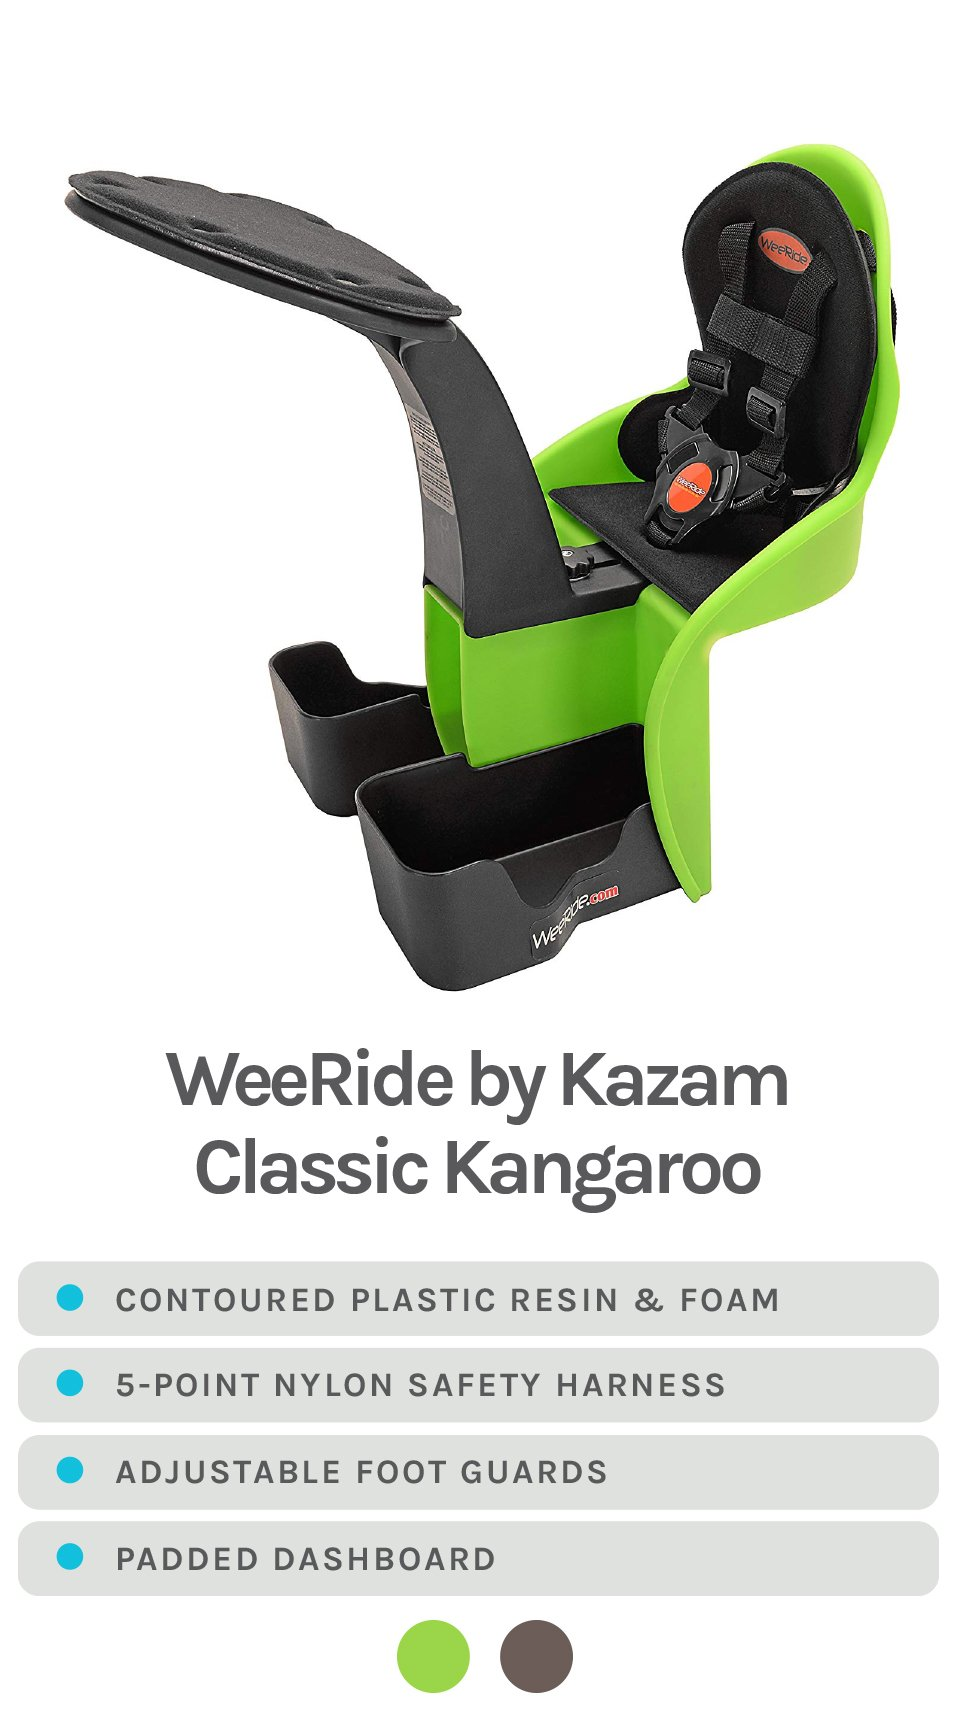 Green WeeRide by Kazam Classic Kangaroo Featured - Specs - Contoured plastic resin & foam, 5-point nylon safety harness, Adjustable foot guards, and Padded dashboard - Available in Green & Brown